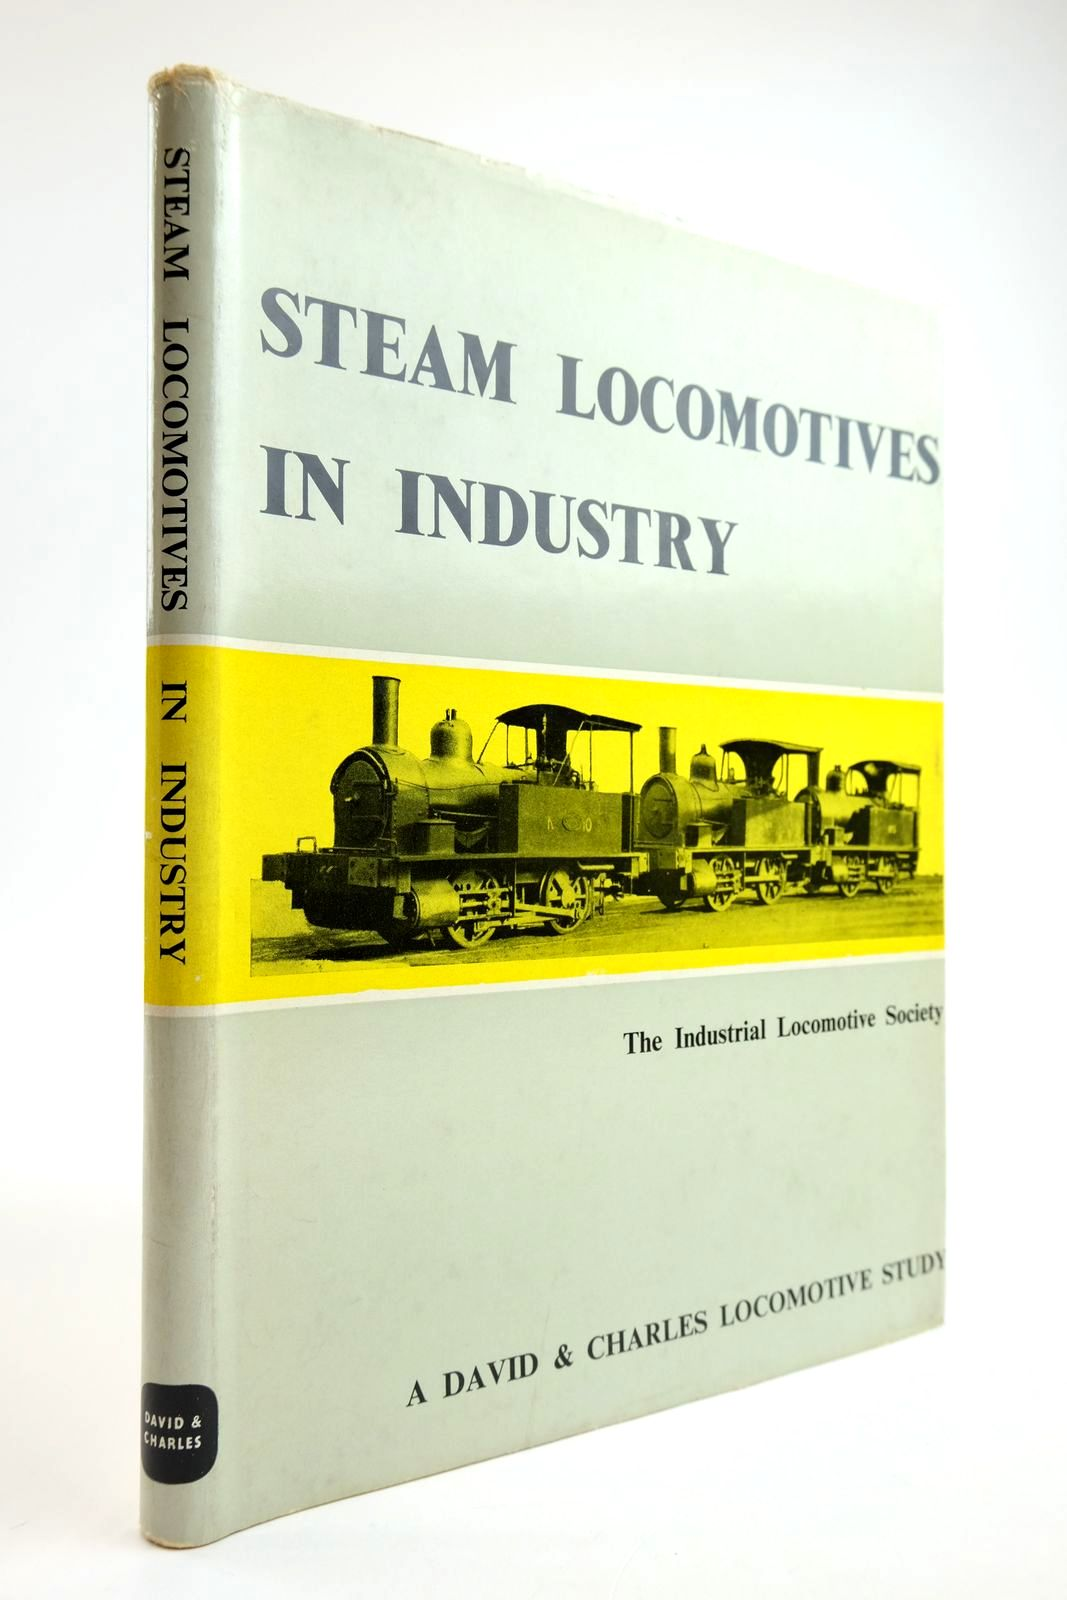 Photo of STEAM LOCOMOTIVES IN INDUSTRY published by David & Charles (STOCK CODE: 2133621)  for sale by Stella & Rose's Books